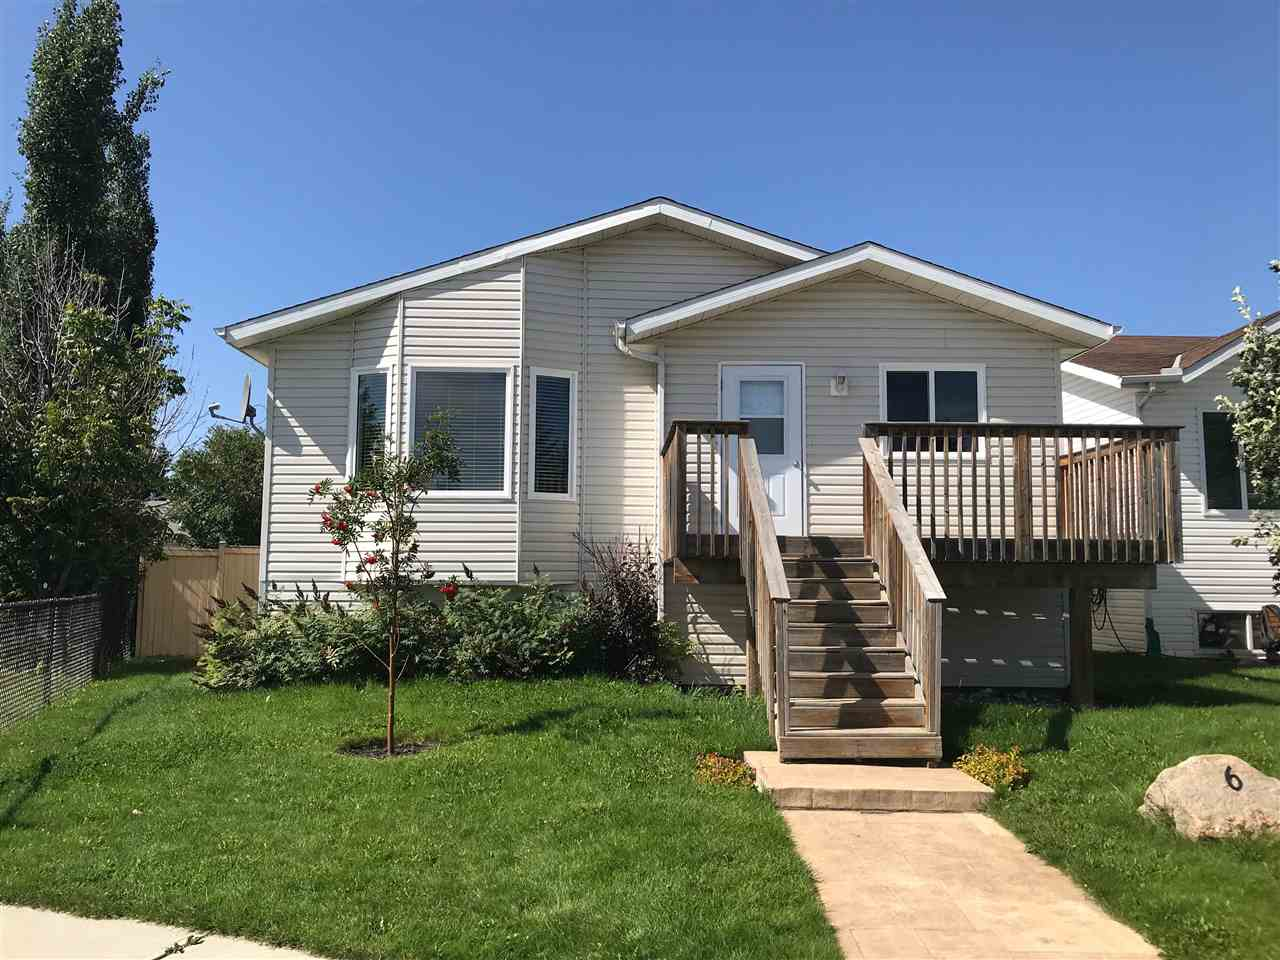 MLS® listing #E4176906 for sale located at 6 Evergreen Crescent